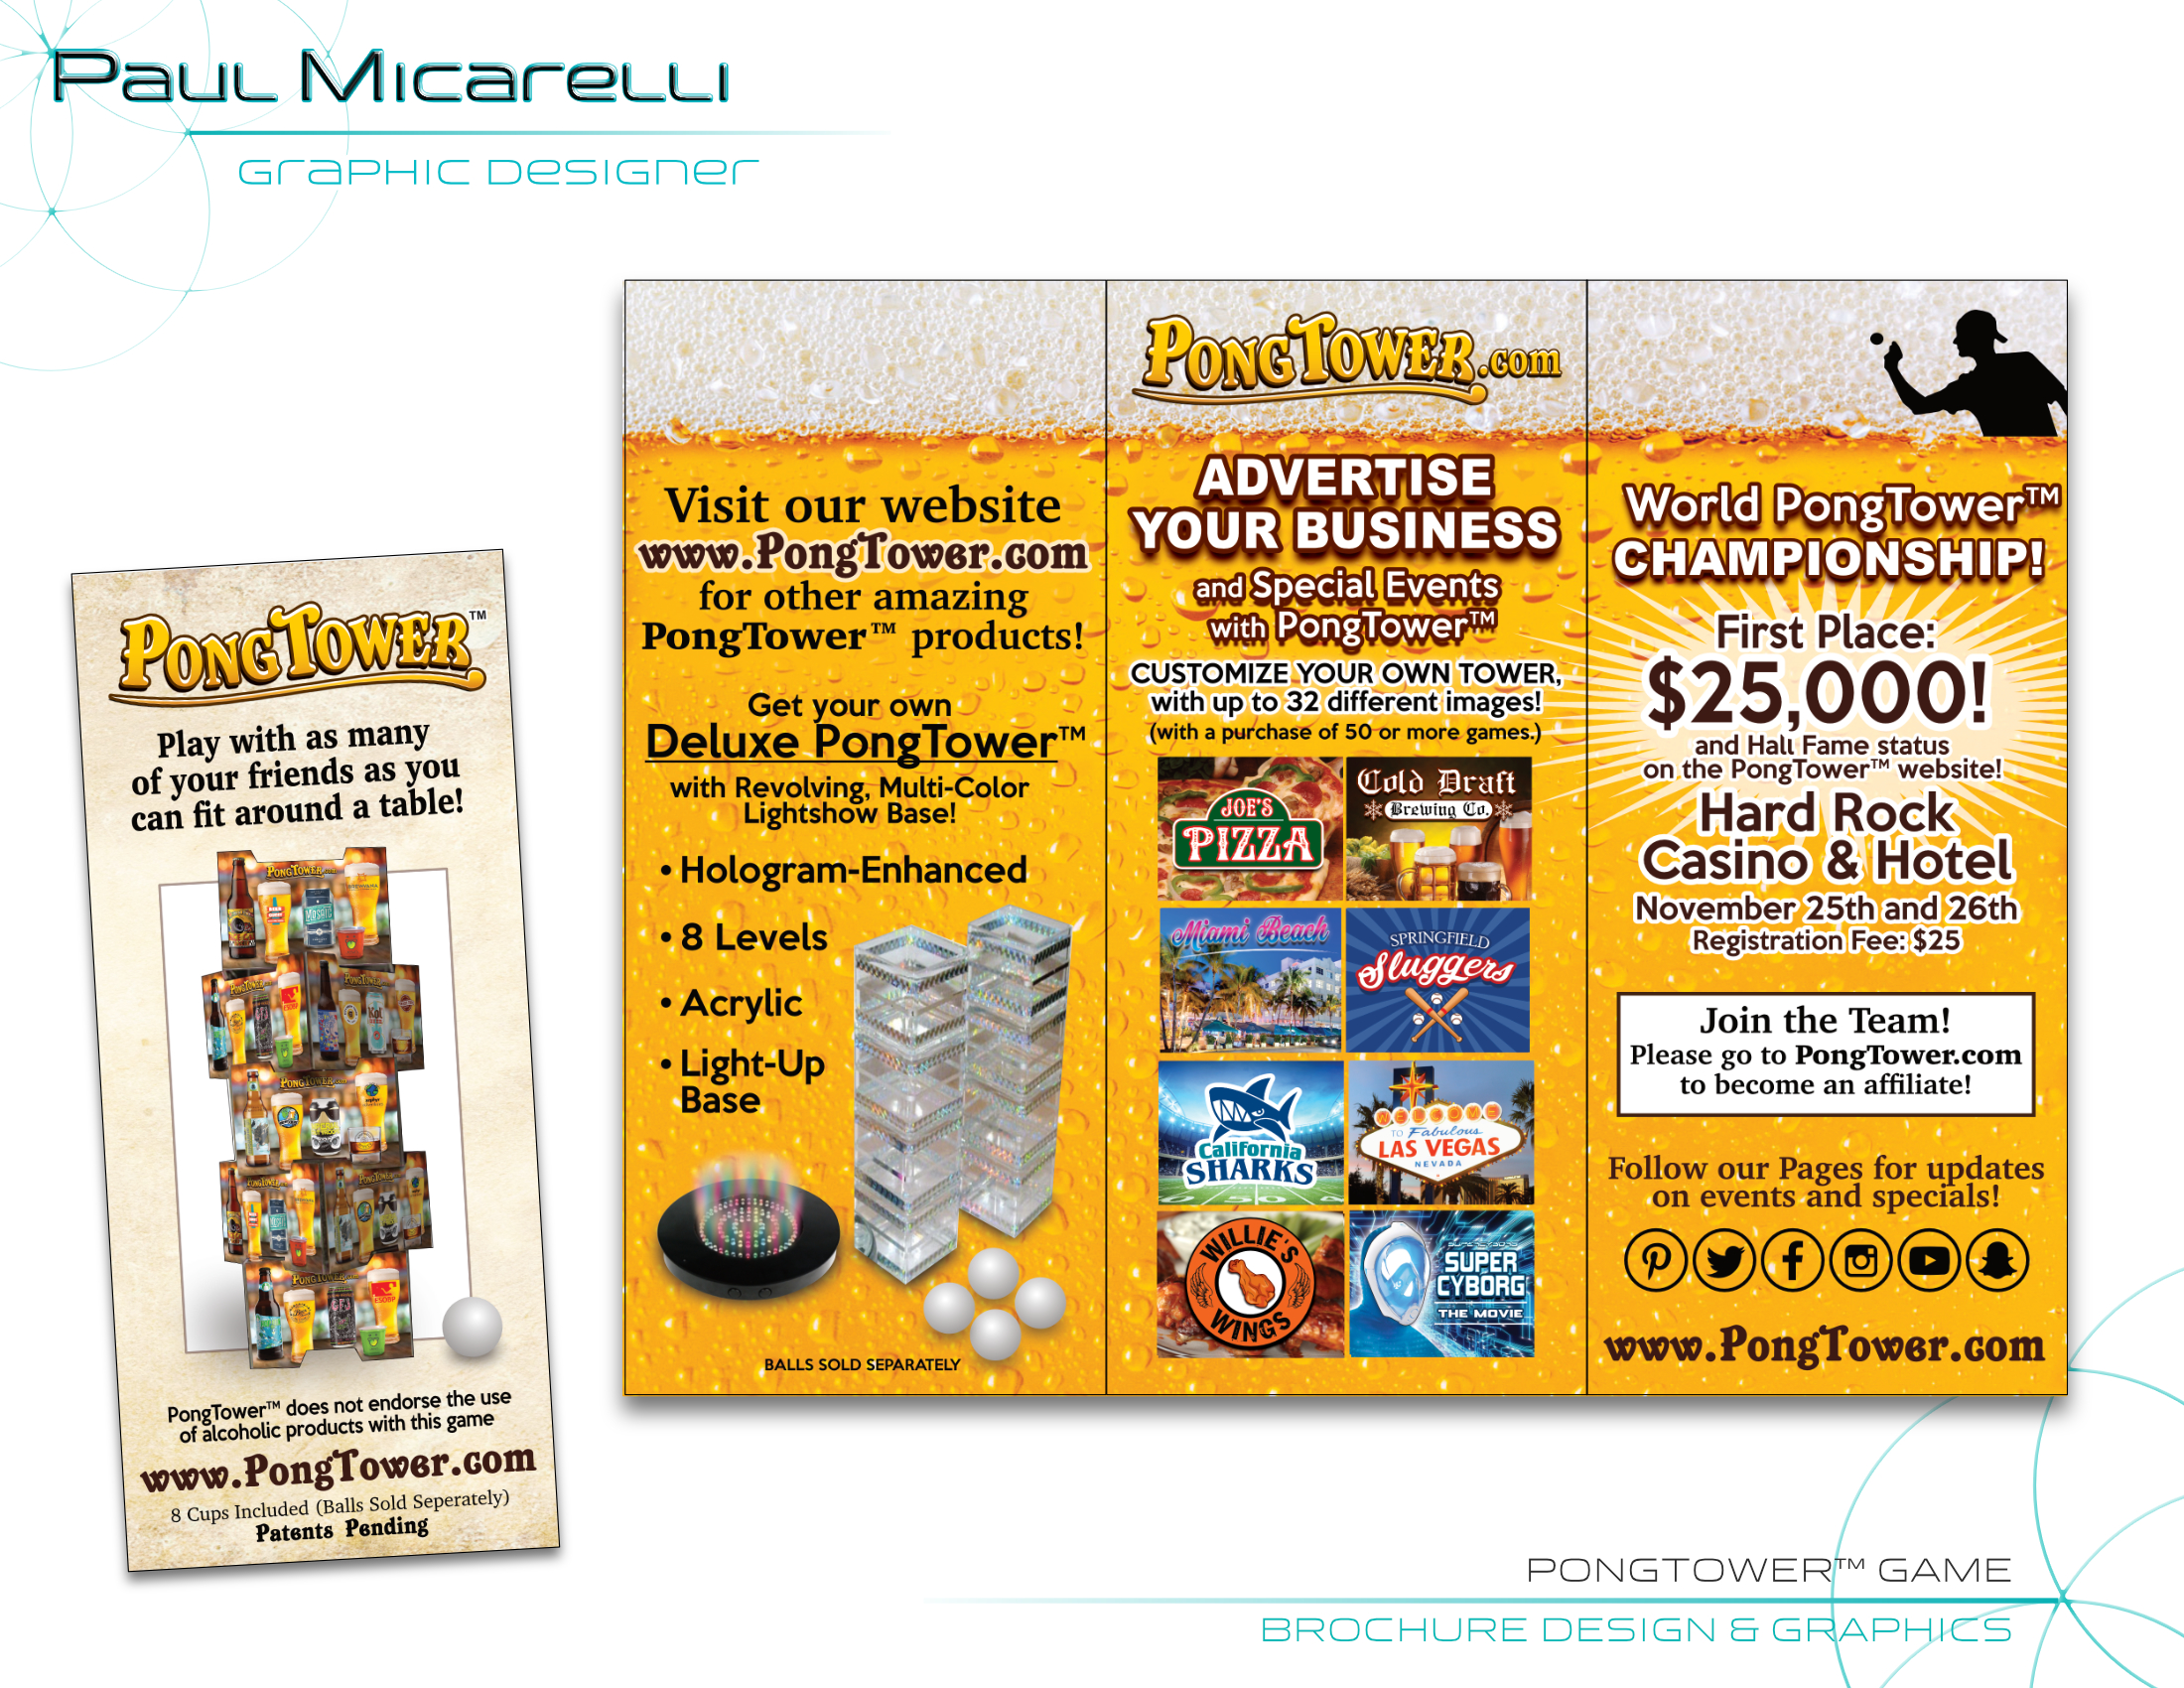 Paul-Micarelli-PongTower Brochure